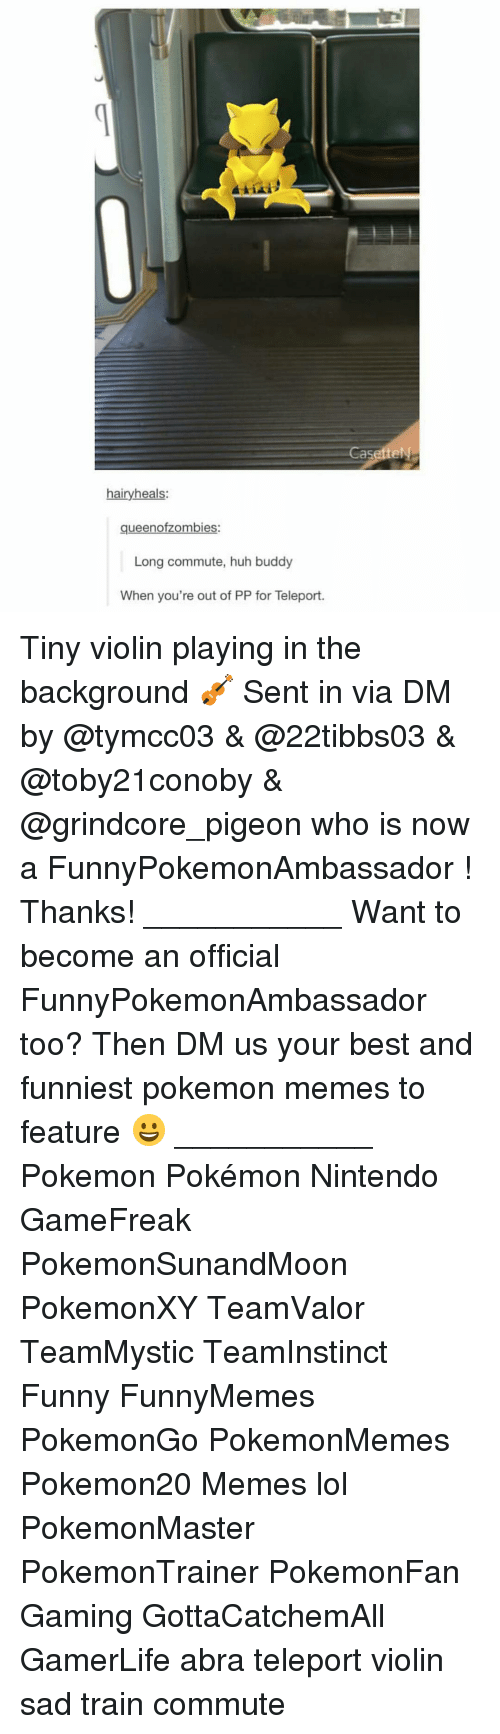 teleporter: hairy heals:  queenofzombies:  Long commute, huh buddy  When you're out of PP for Teleport.  asetteN Tiny violin playing in the background 🎻 Sent in via DM by @tymcc03 & @22tibbs03 & @toby21conoby & @grindcore_pigeon who is now a FunnyPokemonAmbassador ! Thanks! ___________ Want to become an official FunnyPokemonAmbassador too? Then DM us your best and funniest pokemon memes to feature 😀 ___________ Pokemon Pokémon Nintendo GameFreak PokemonSunandMoon PokemonXY TeamValor TeamMystic TeamInstinct Funny FunnyMemes PokemonGo PokemonMemes Pokemon20 Memes lol ポケットモンスター PokemonMaster PokemonTrainer PokemonFan Gaming GottaCatchemAll GamerLife abra teleport violin sad train commute